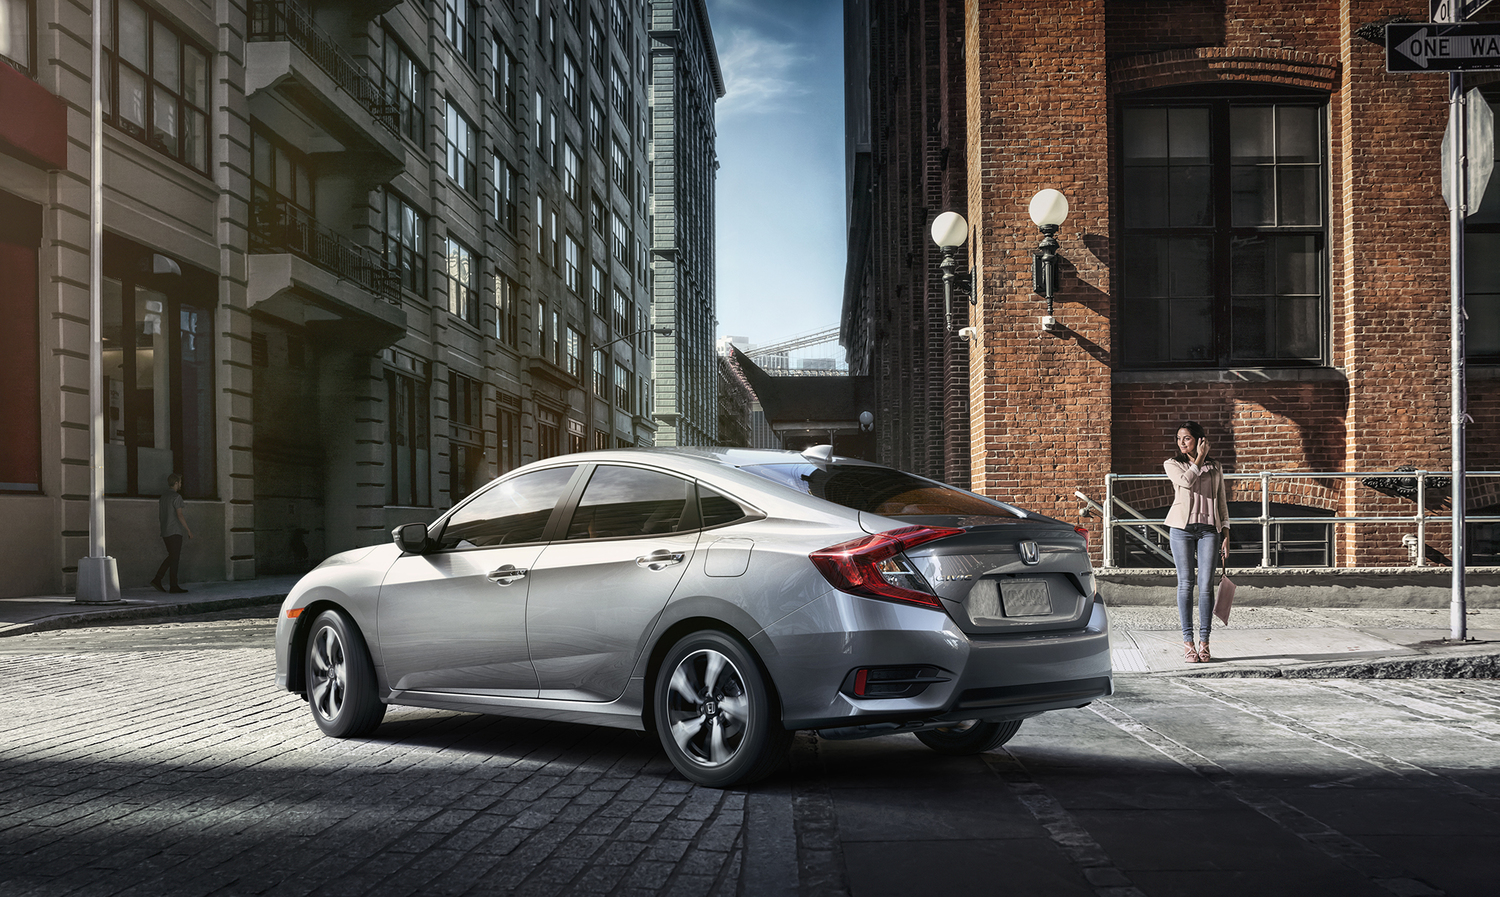 Ultimate Flexibility To Realize Series Of Beautiful Realistic And Engaging Images That Defined The Look 2016 North American Car Year